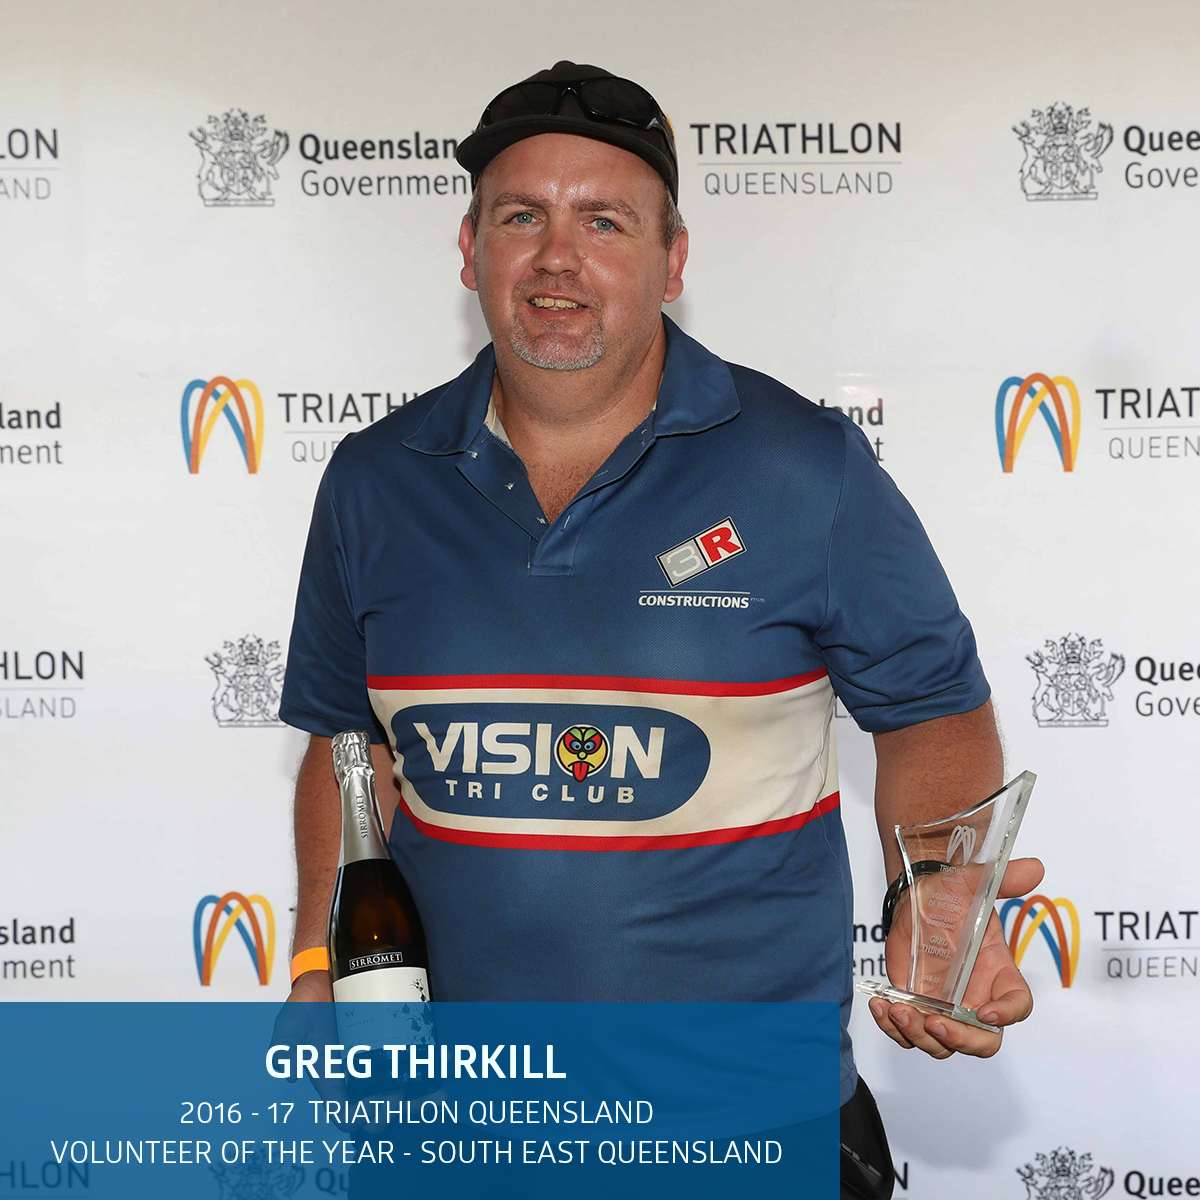 Greg Thirkill